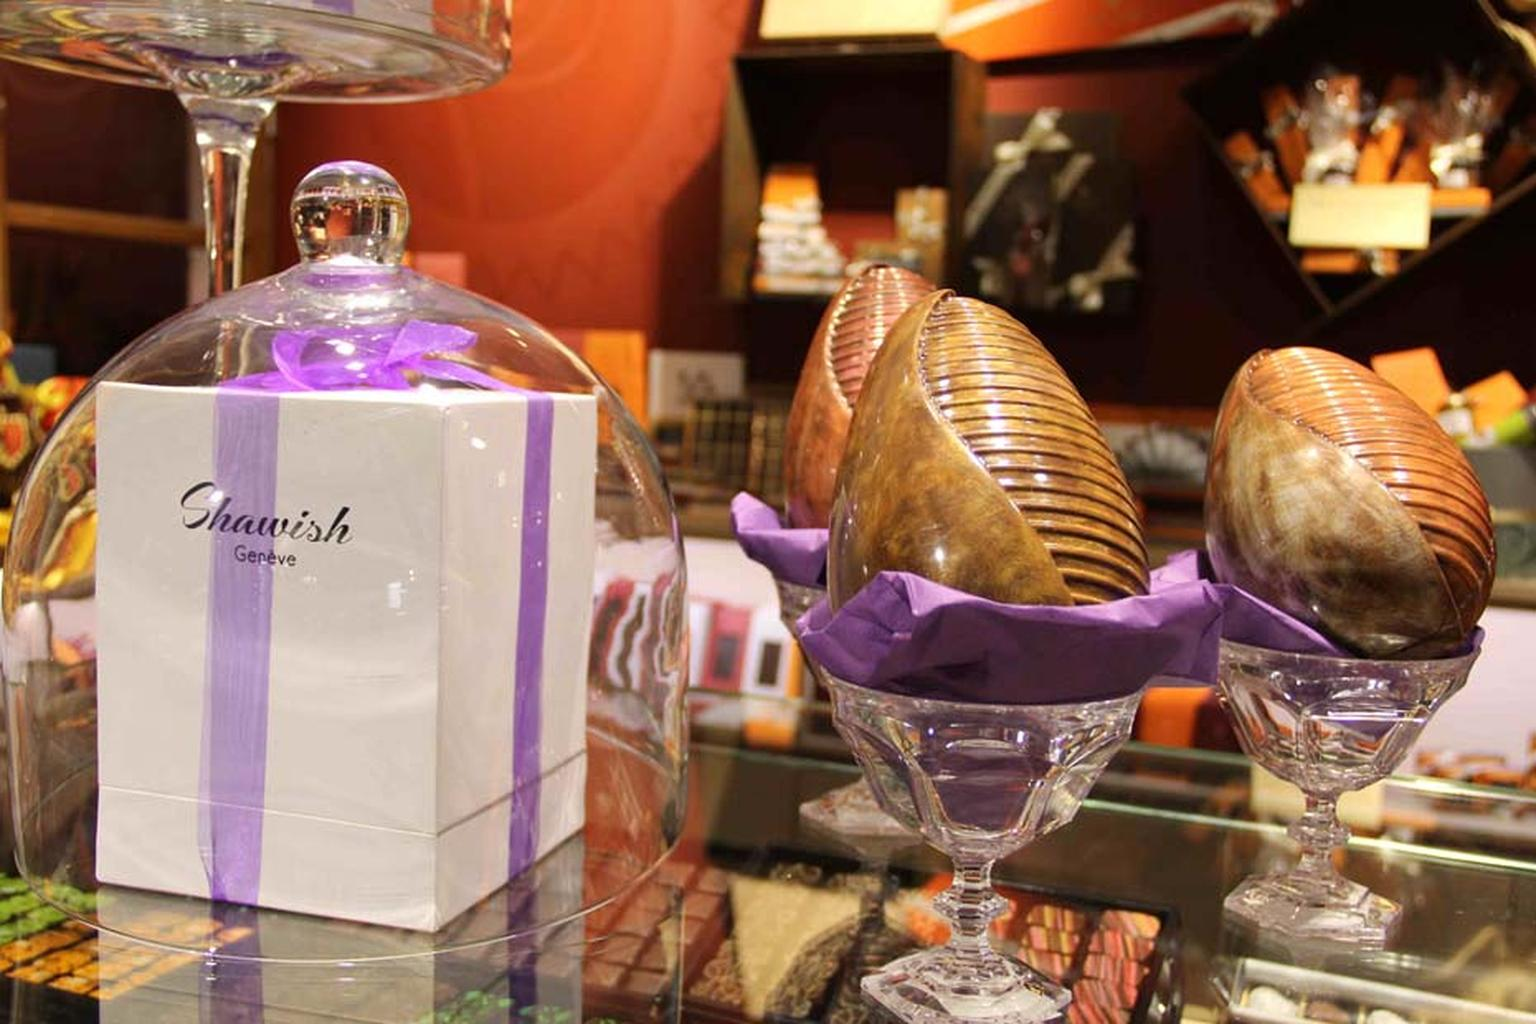 The Shawish Easter Surprise at Harrods is the ultimate in edible luxury: a chocolate Easter egg containing a signature jewel from the Swiss jeweller